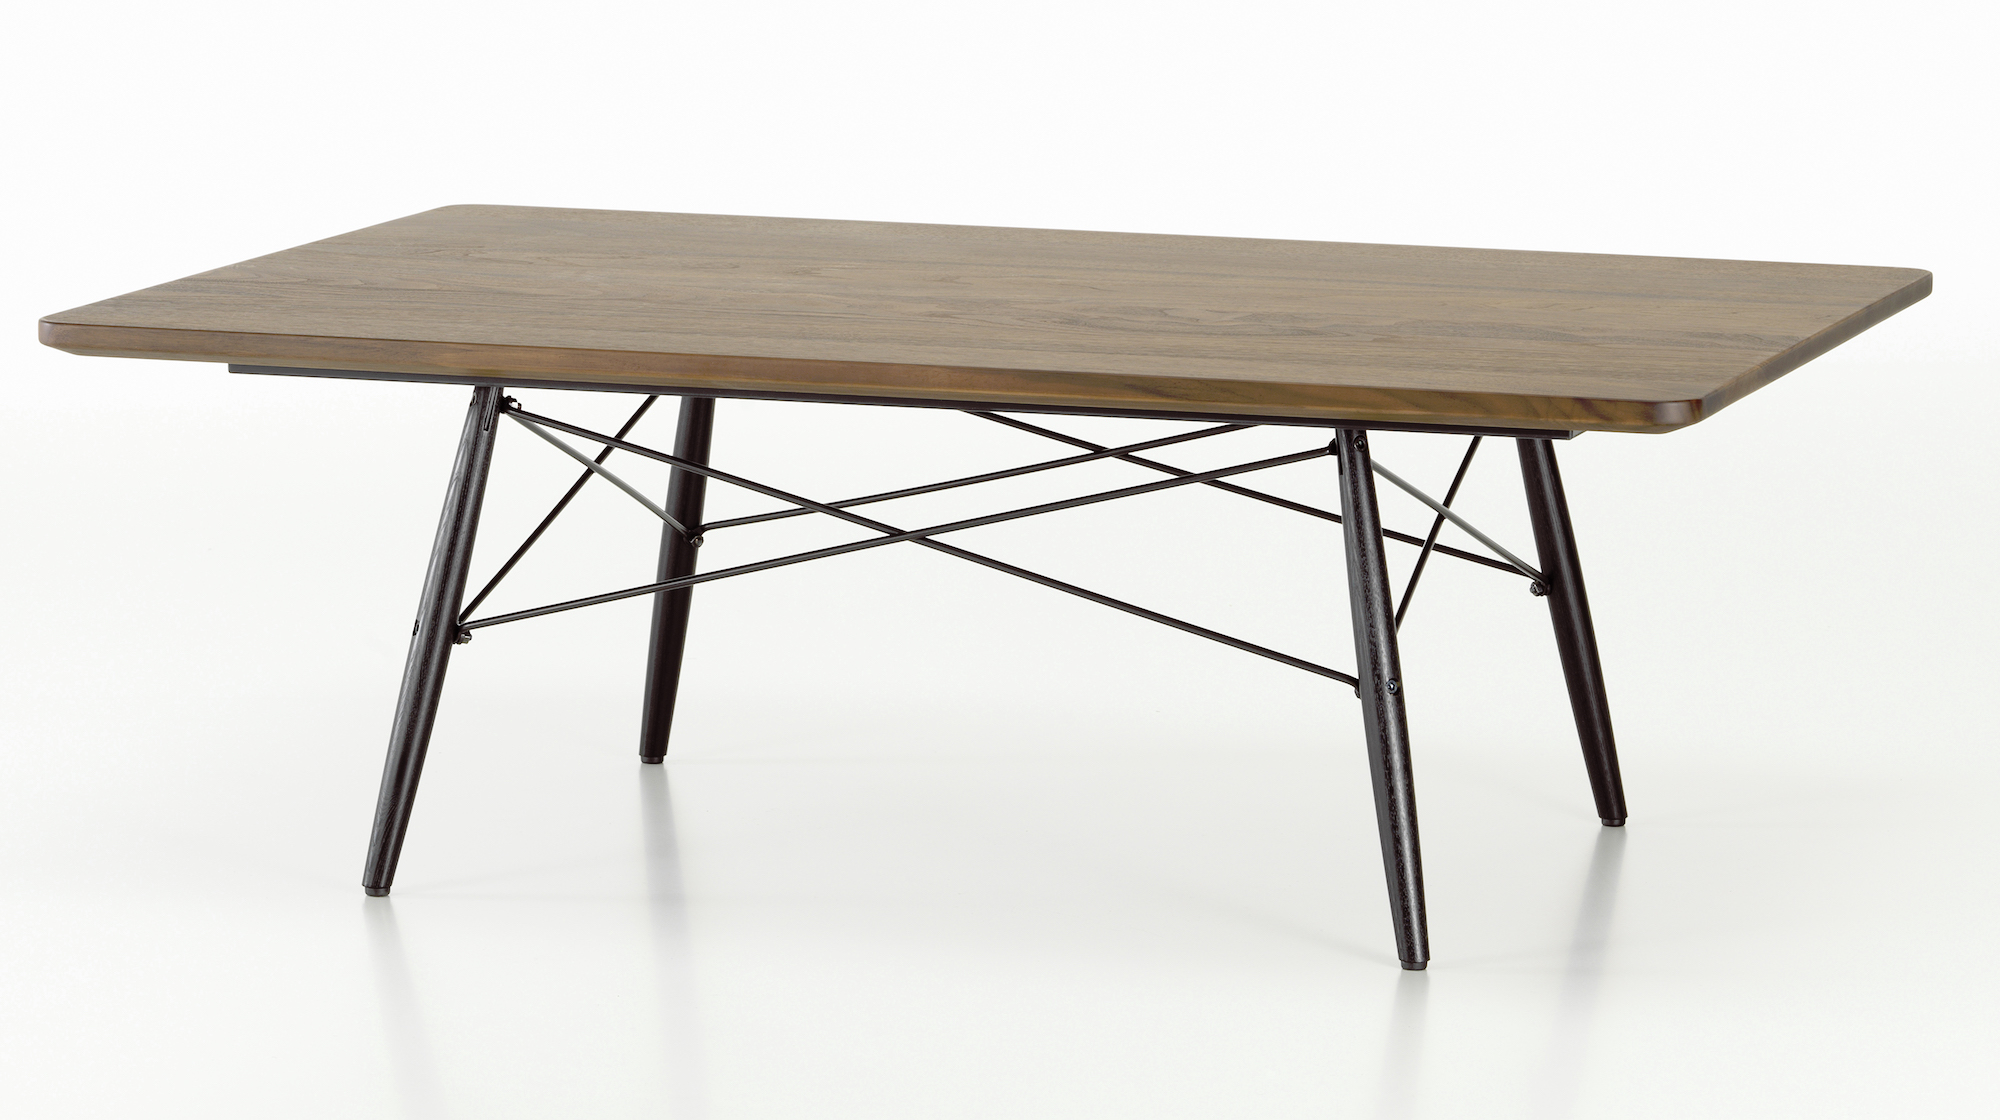 Vitra Eames Coffee Table Charles & Ray Eames